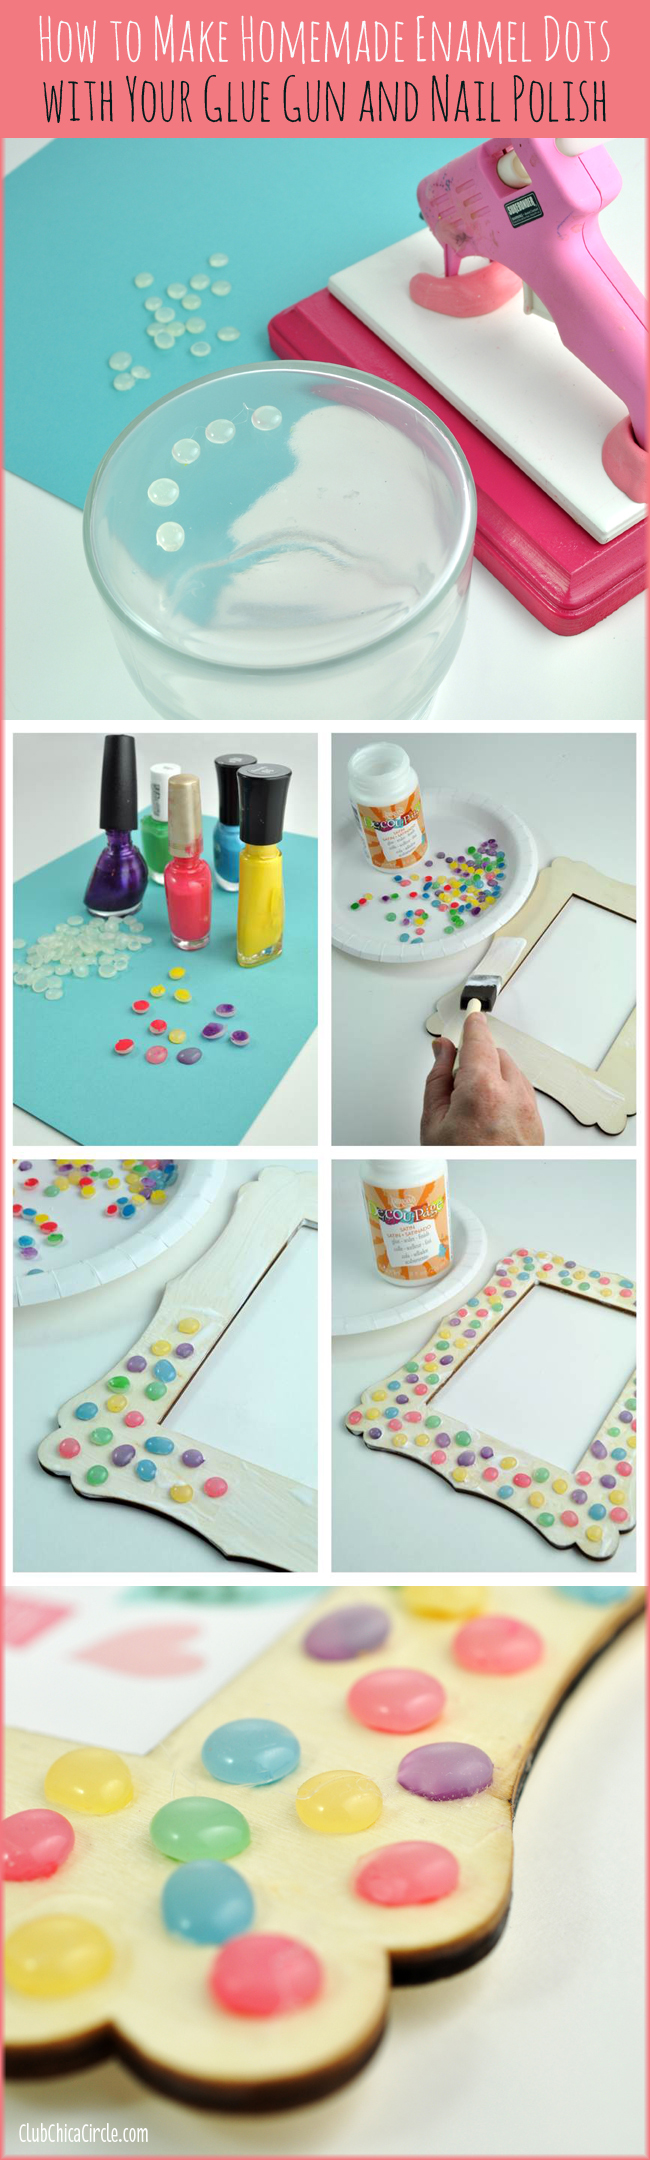 I Used These Supplies To Make My Own Enamel Dots